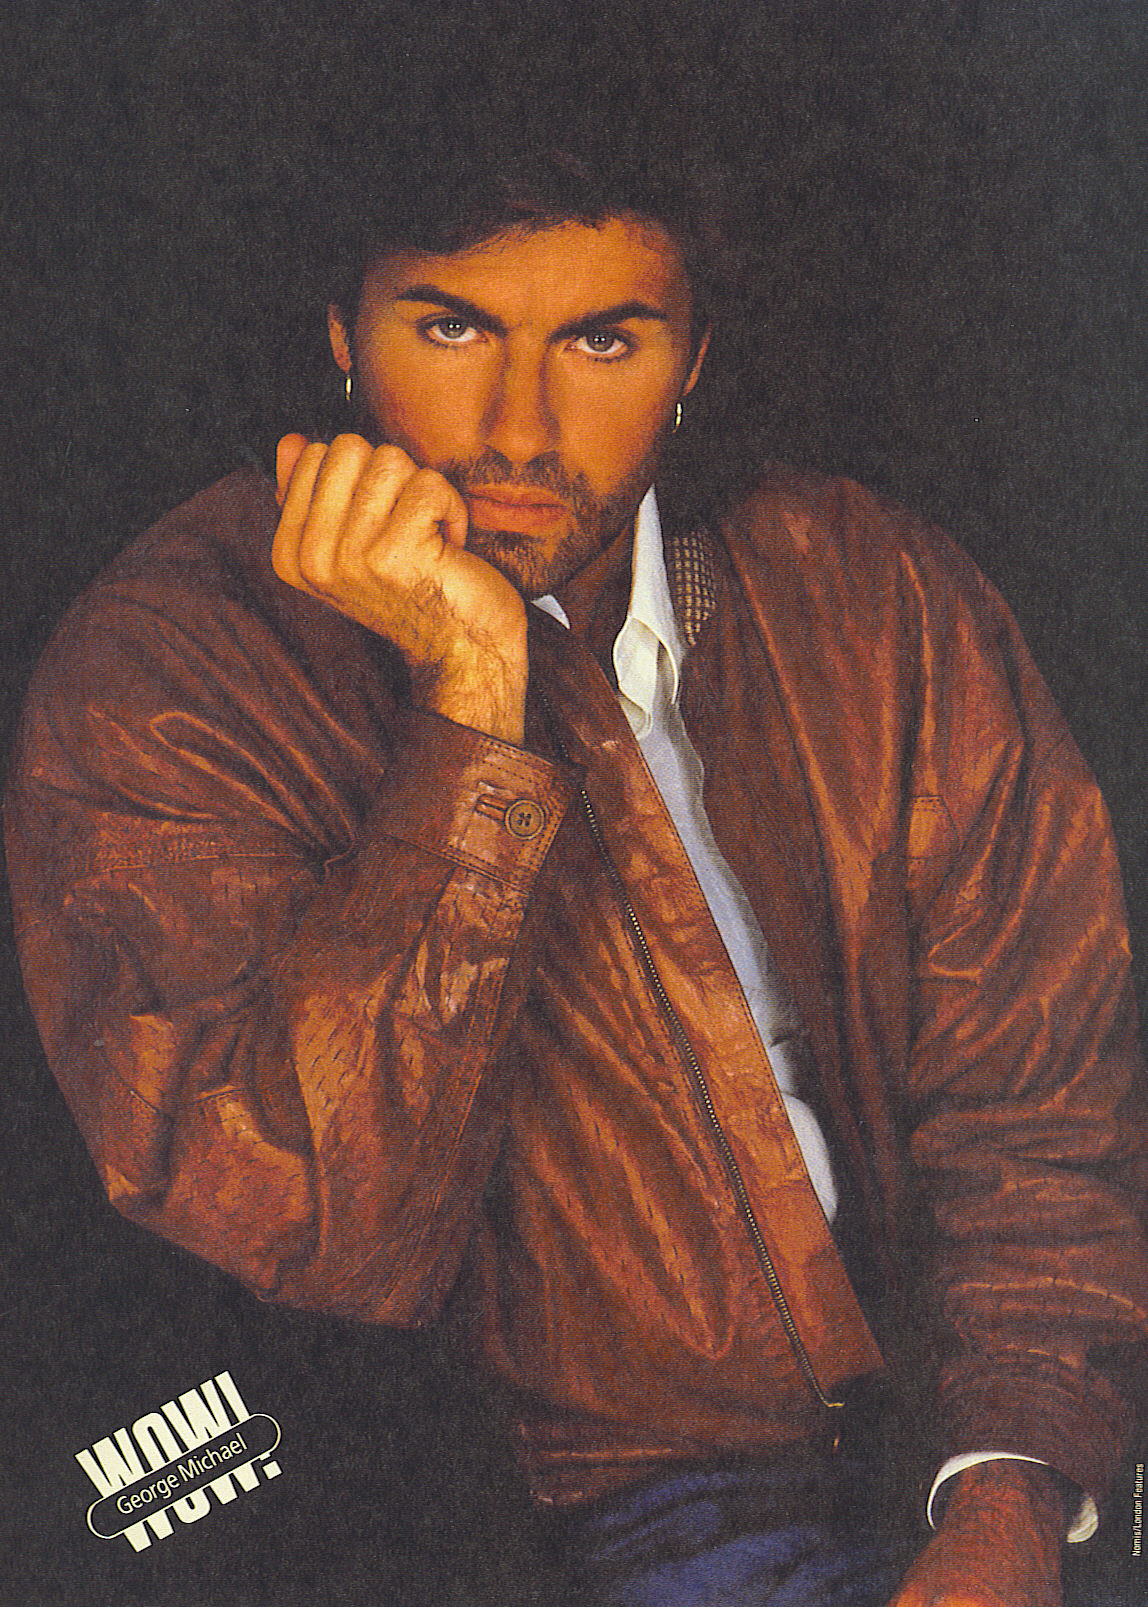 George Michael - Photos Hot